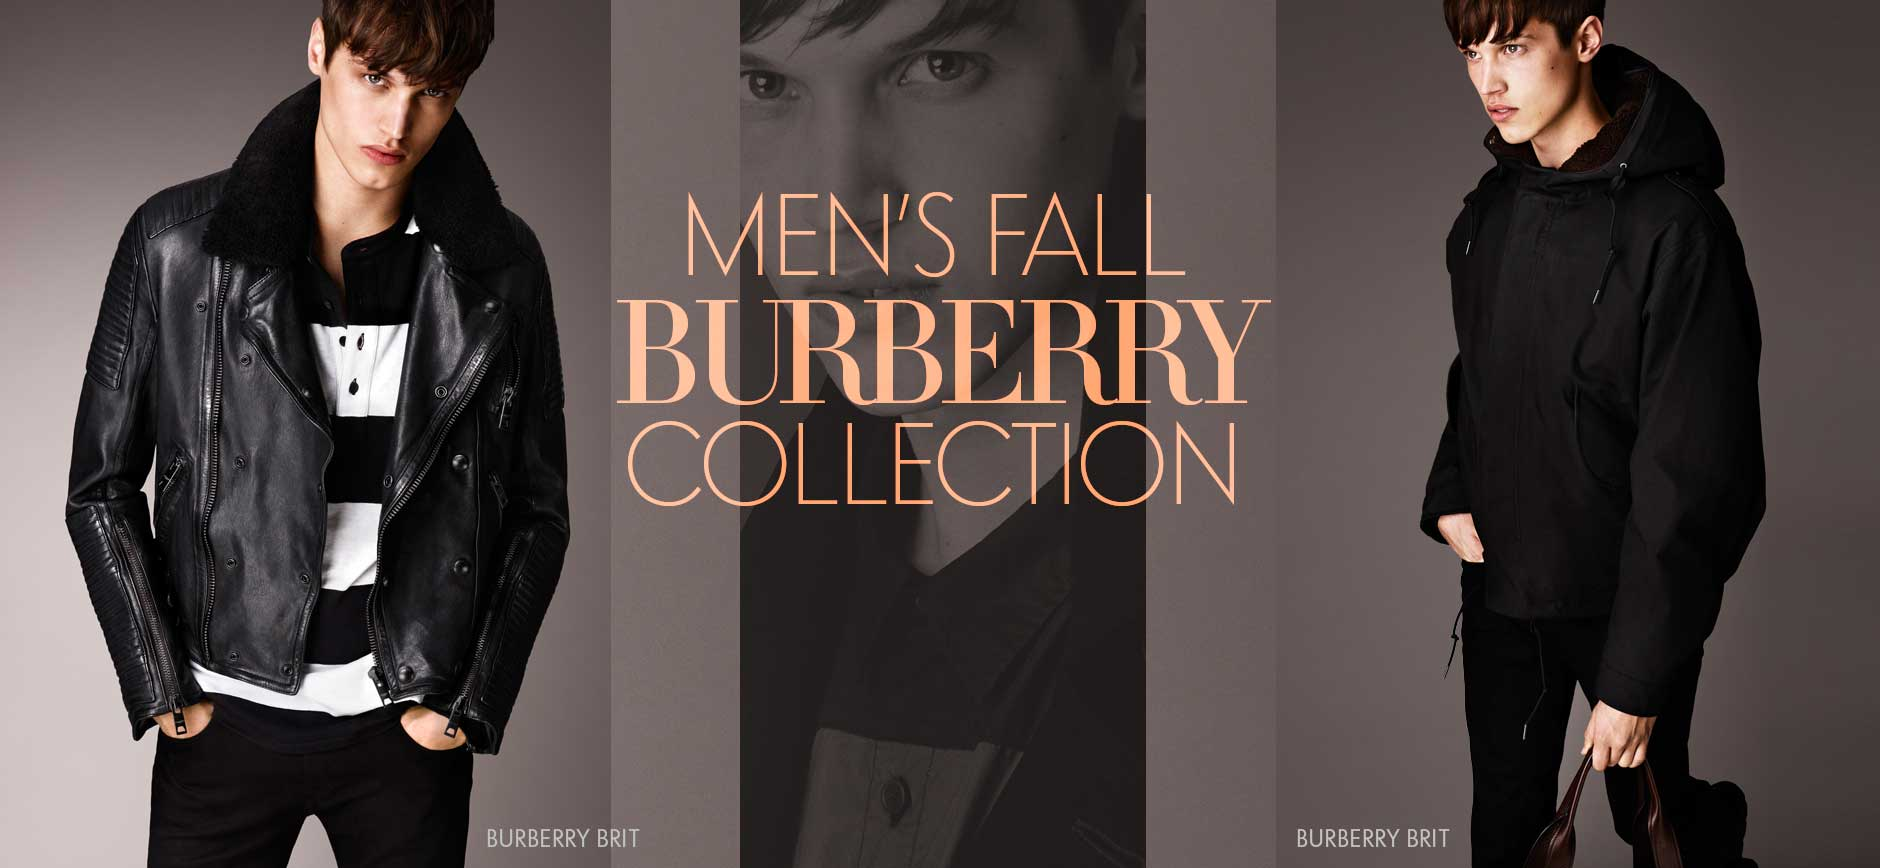 Burberry Men's Fall Collection